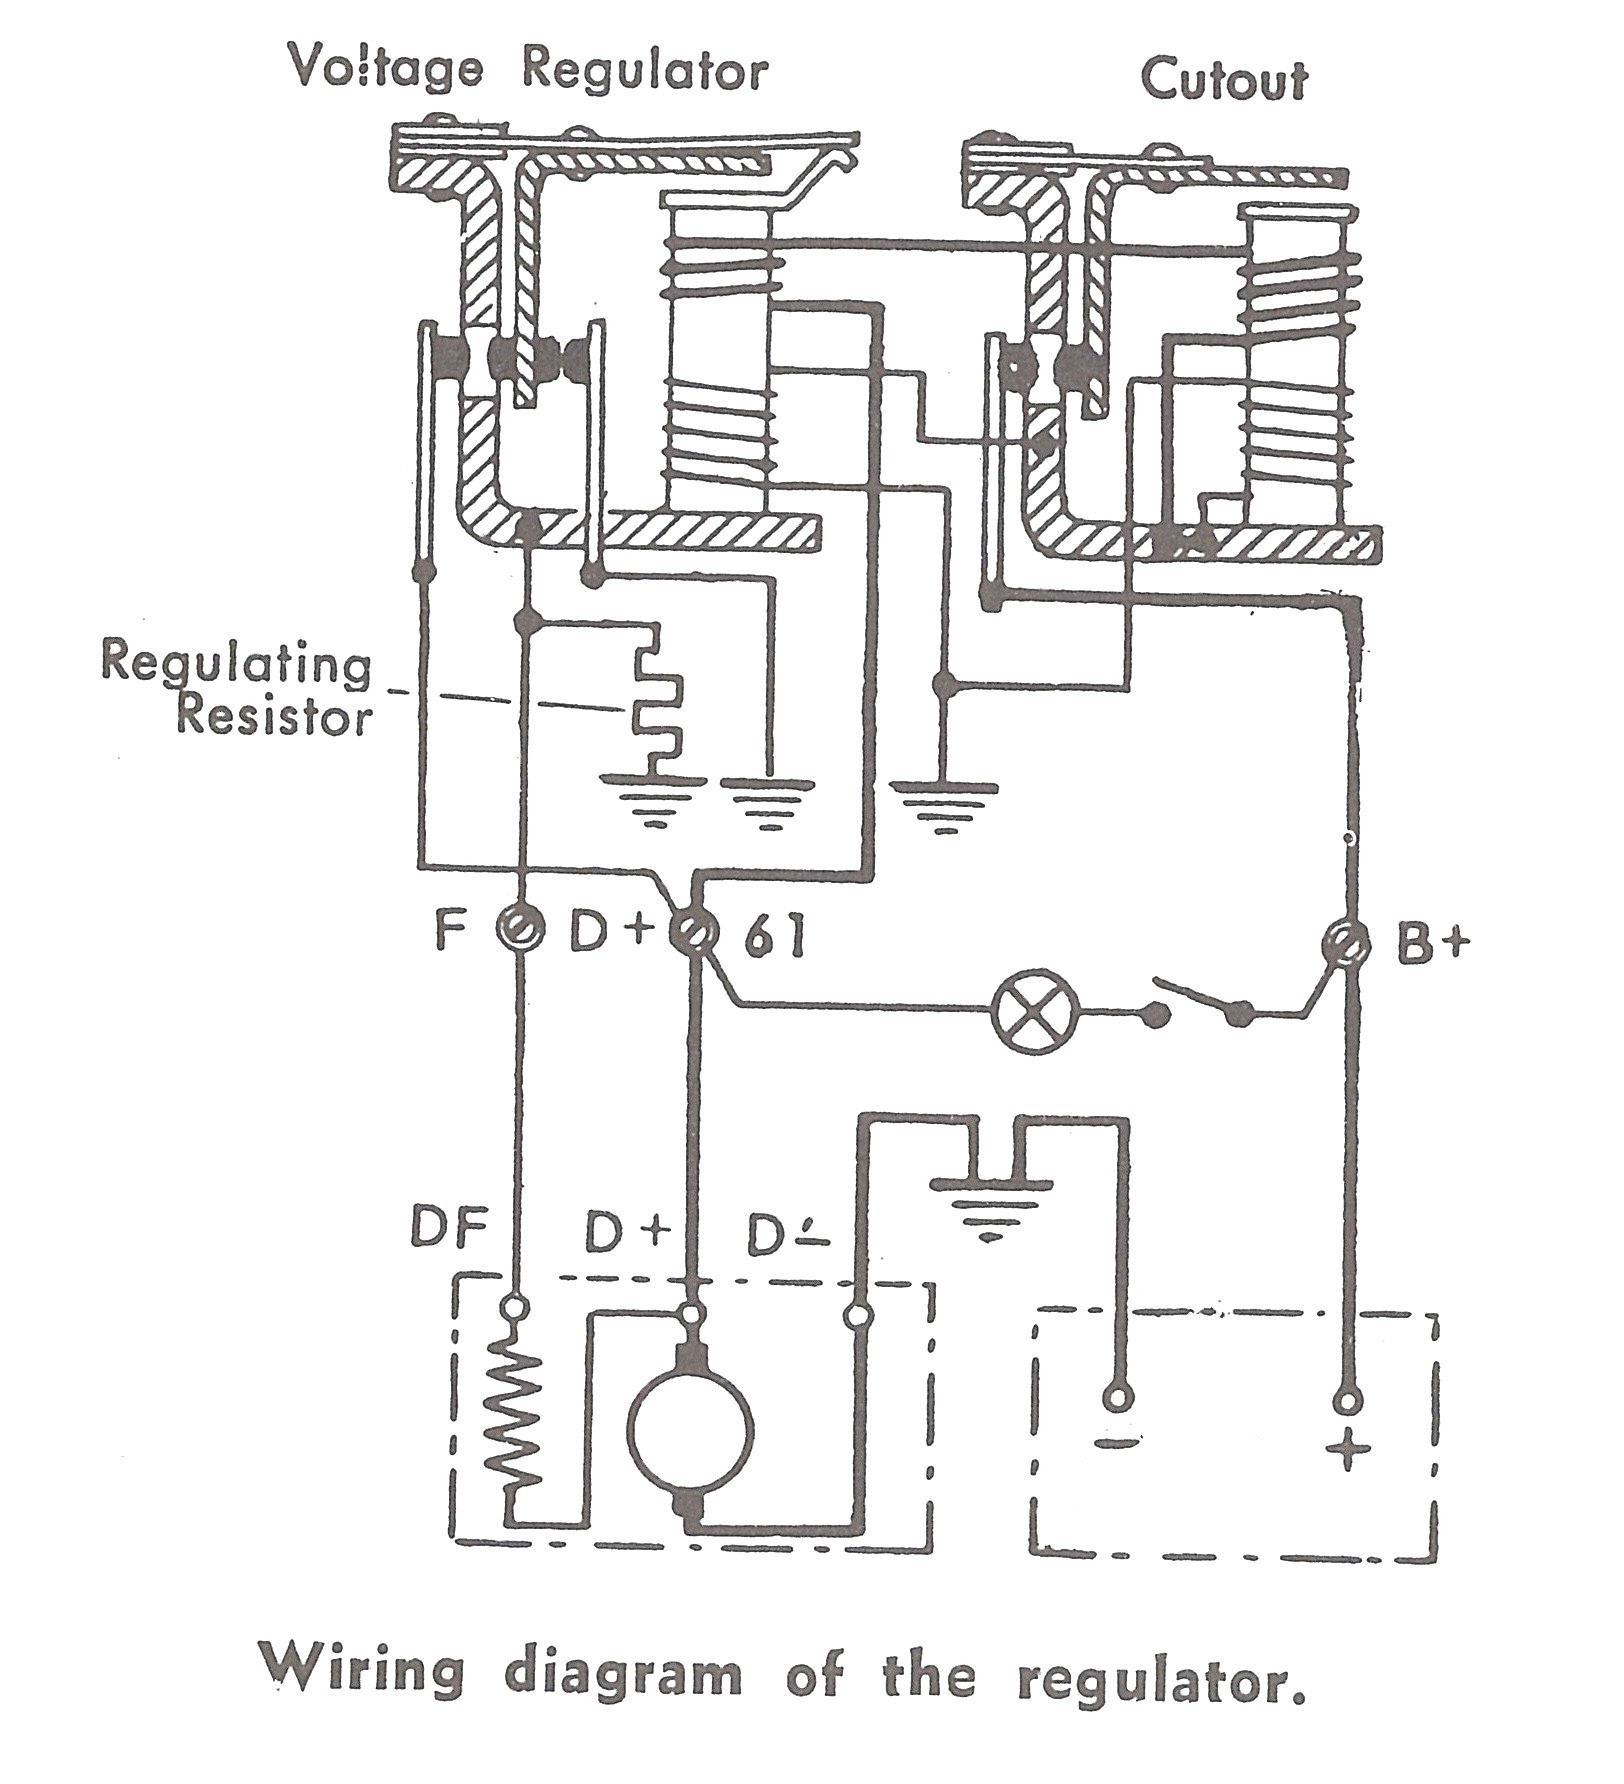 6 Volt Alternator Wiring Diagram - Wiring Diagrams  Wire Alternator Wiring Diagram And Resistor on